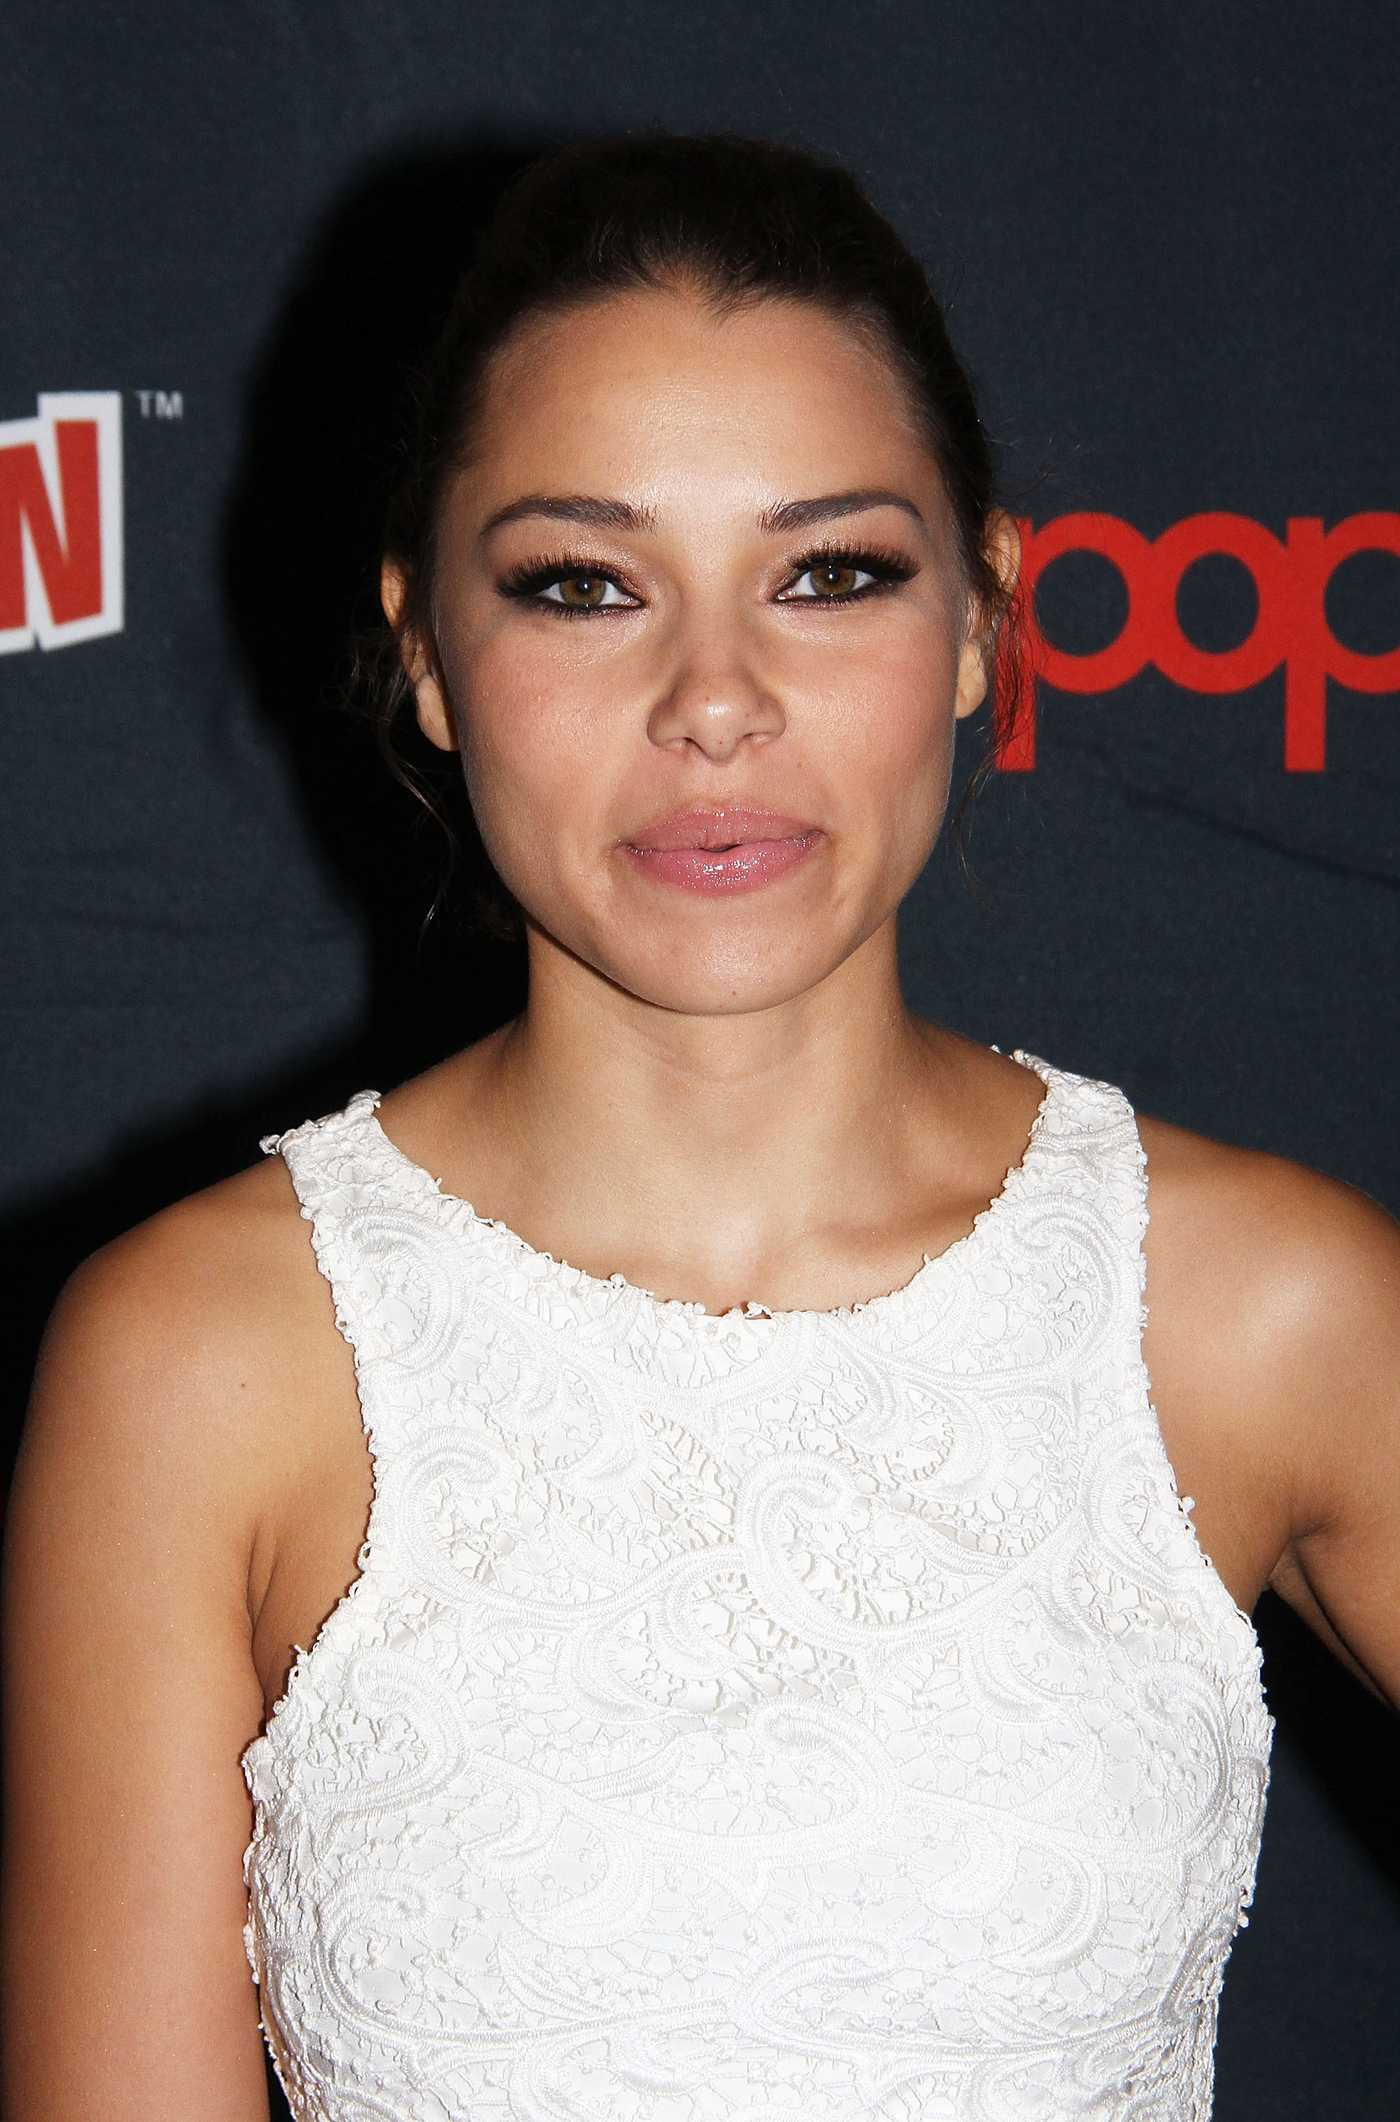 Jessica Parker Kennedy promoting Black Sails at Comic-Con in New York